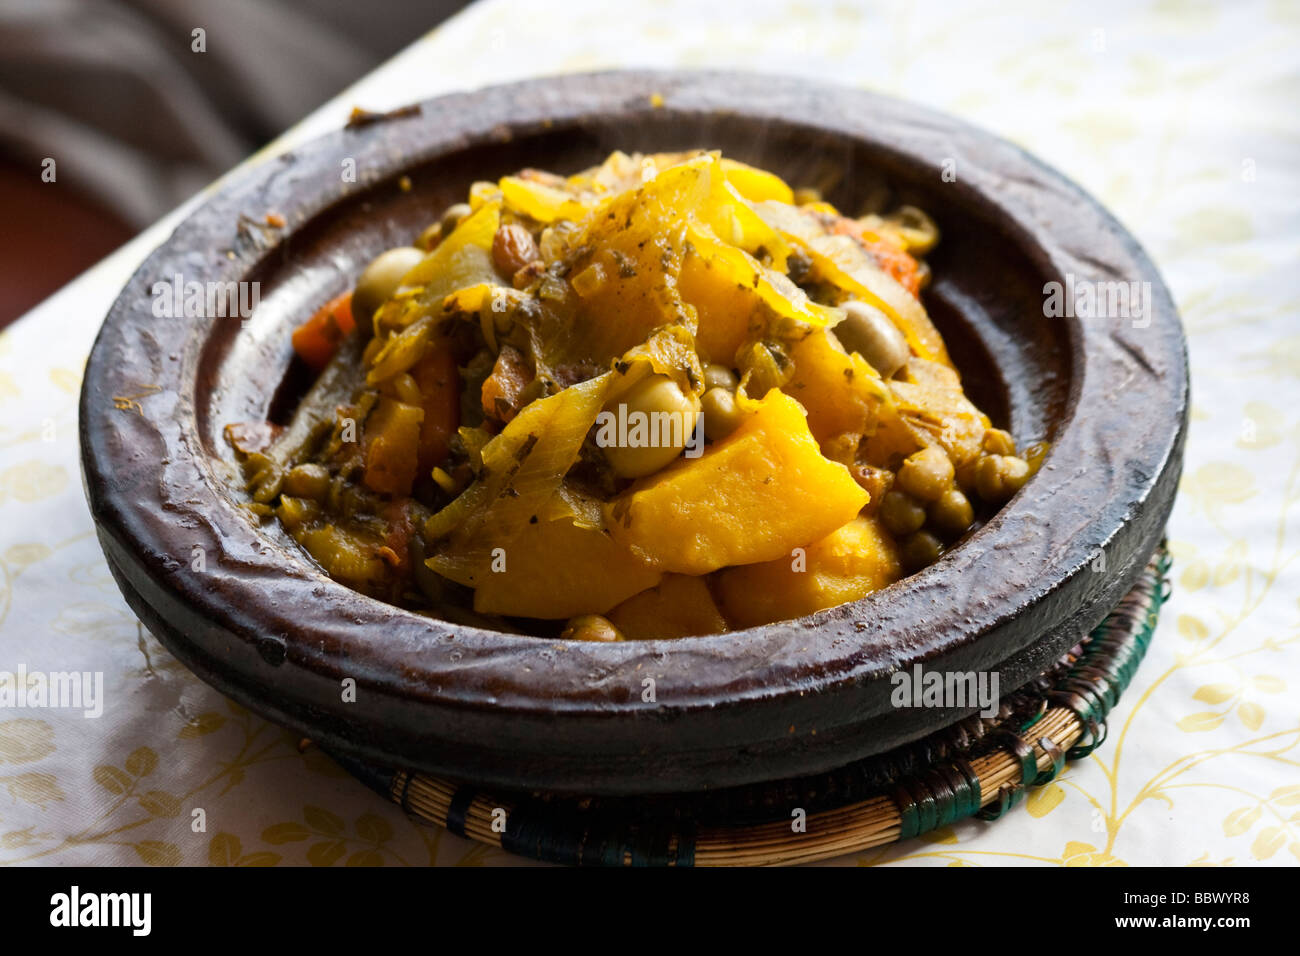 Tagine de Rabat Maroc Photo Stock